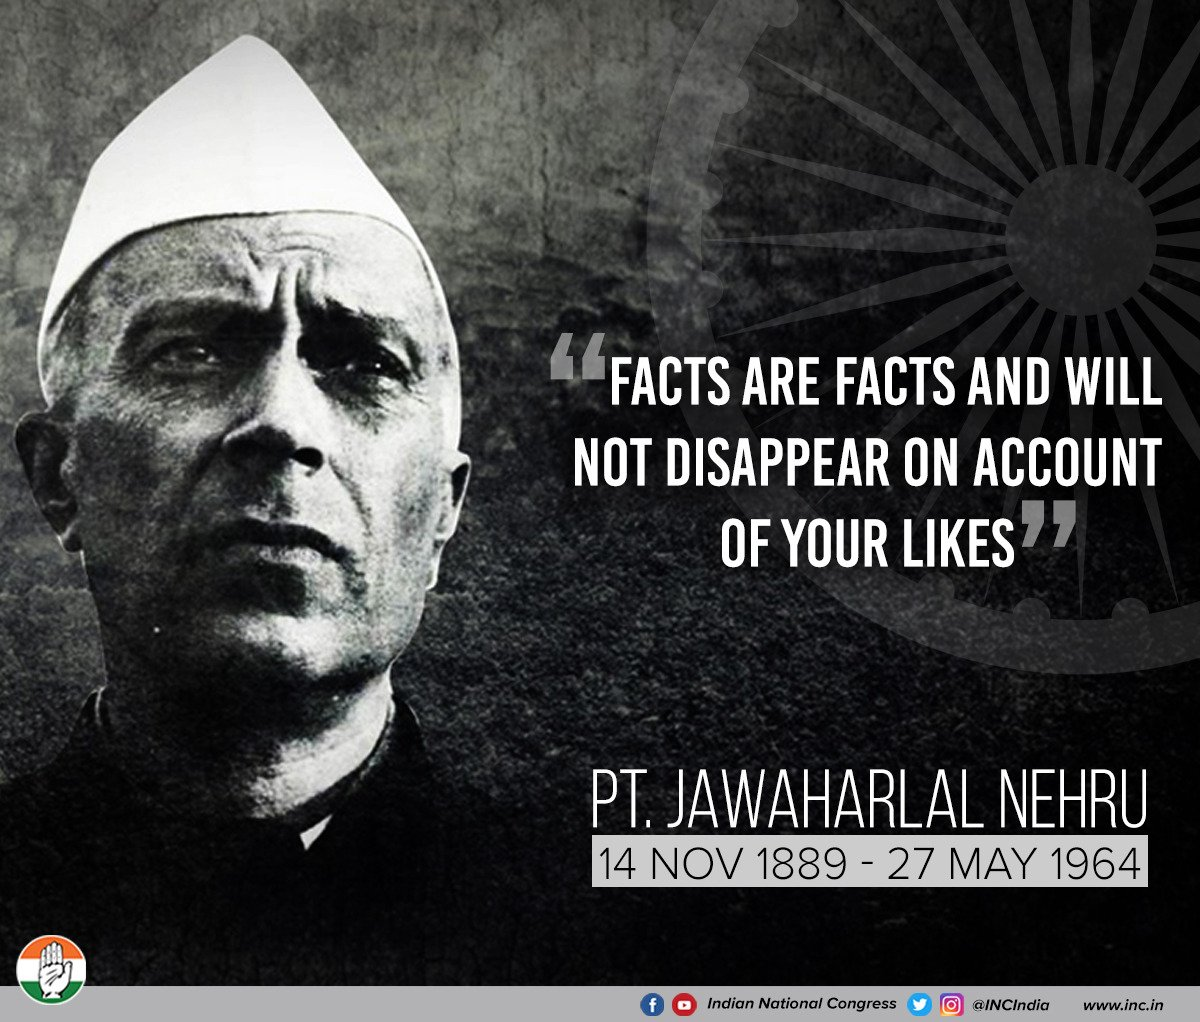 Indias first and the longest serving Prime Minister, Pt. Jawaharlal Nehru dedicated his life to the nation. He laid the foundations of strong democratic institutions which shaped our modern day democracy. Today we honour the man & the legacy. #RememberingNehru